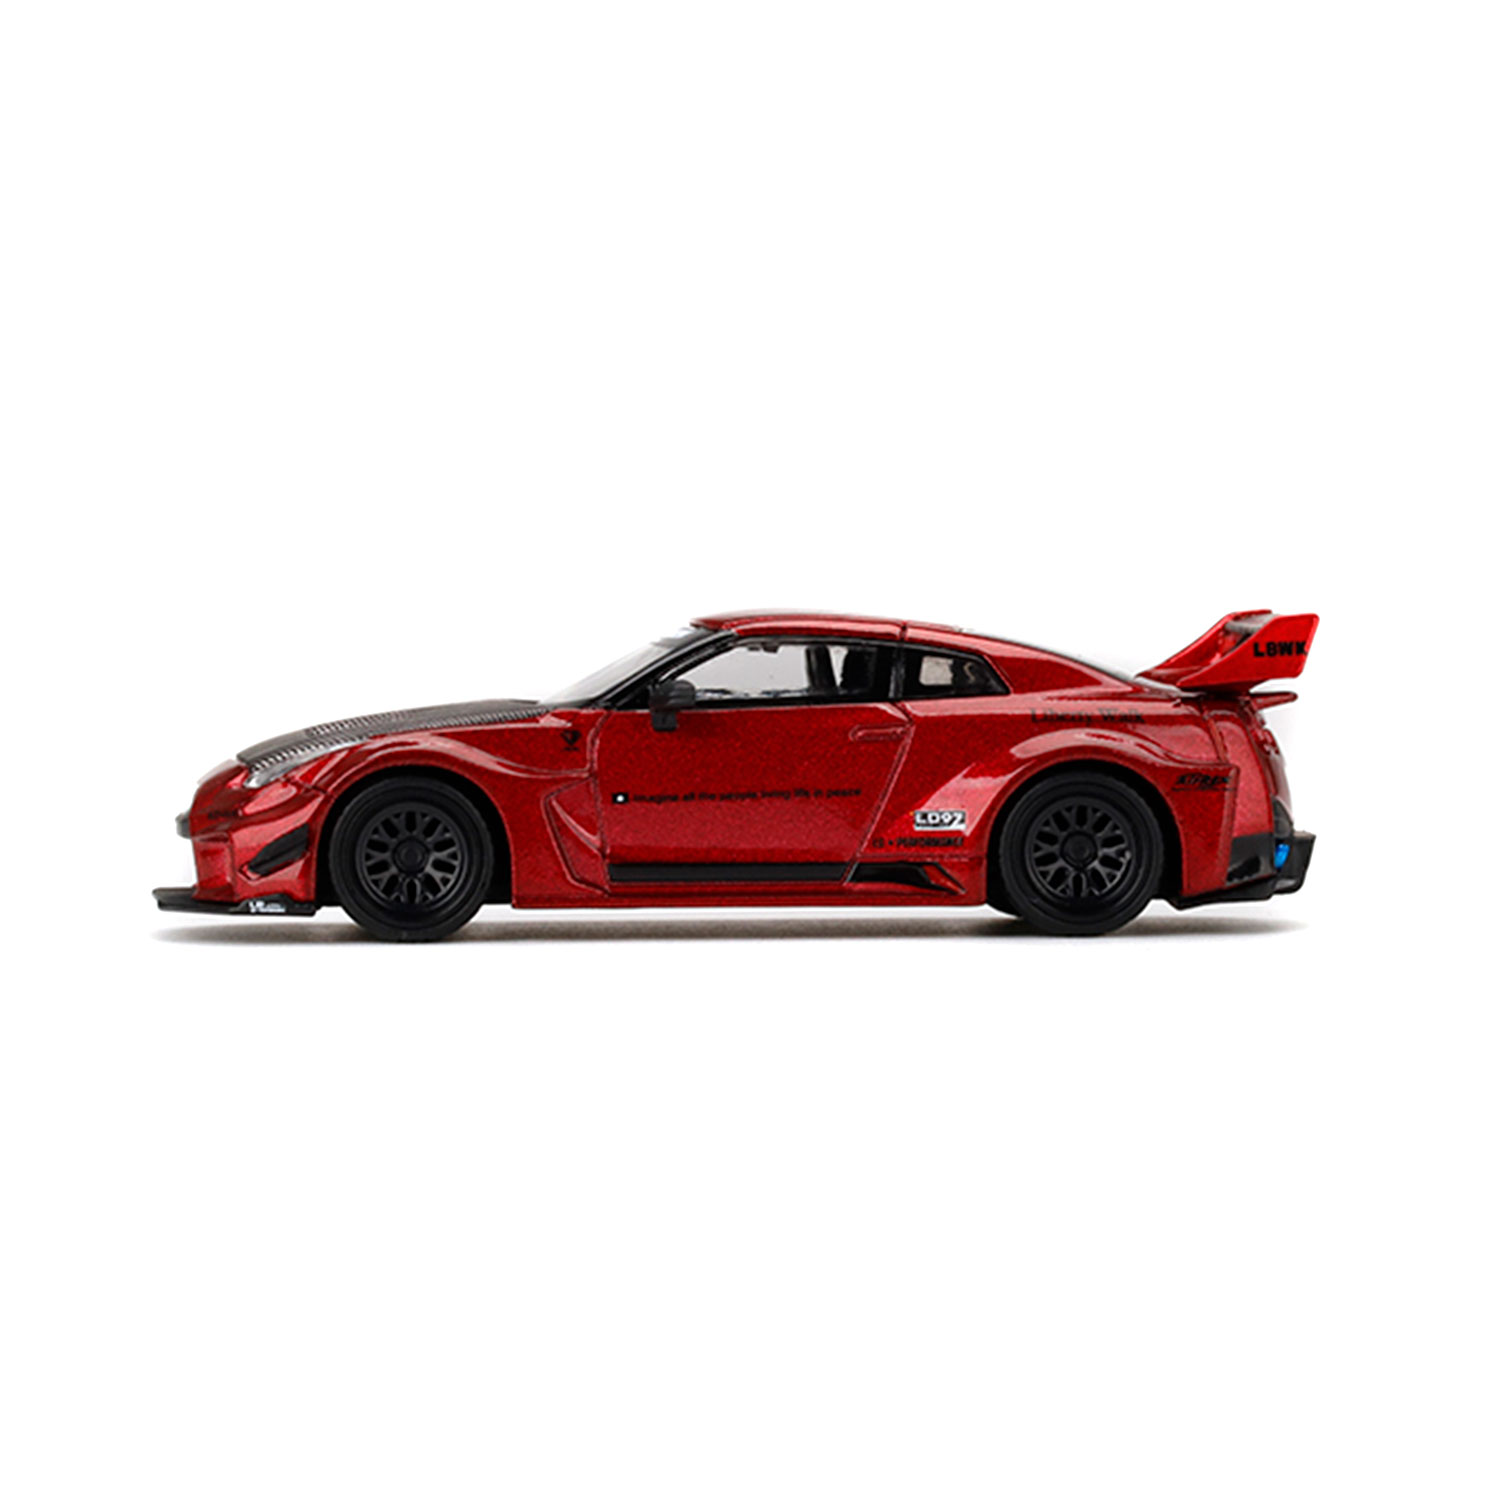 1/64 LB-Silhouette WORKS GT NISSAN 35GT-RR Ver.1 Lava Red